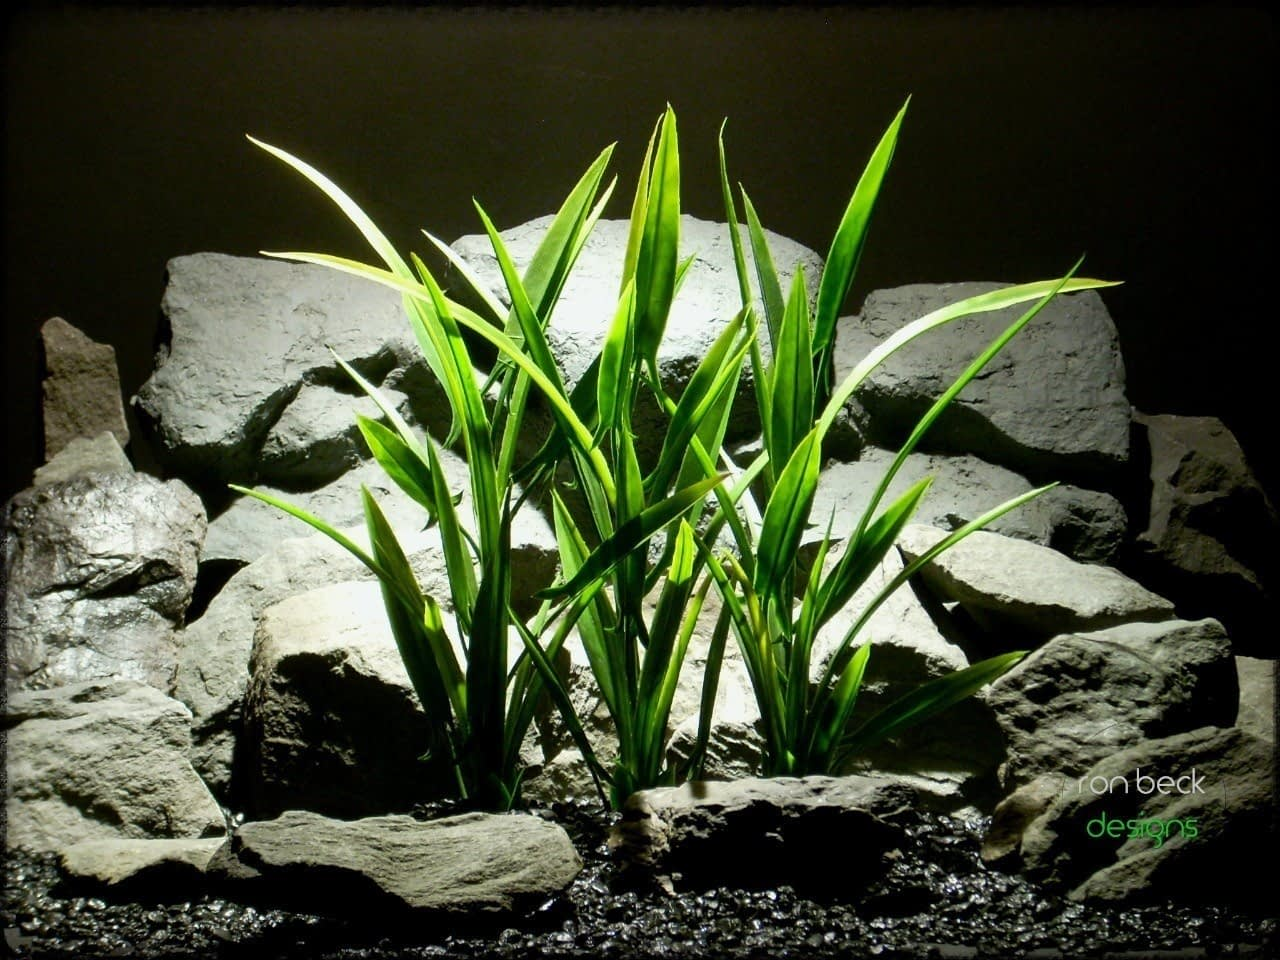 artificial aquarium plants: arrowhead grass plot from ron beck designs, 04 2018